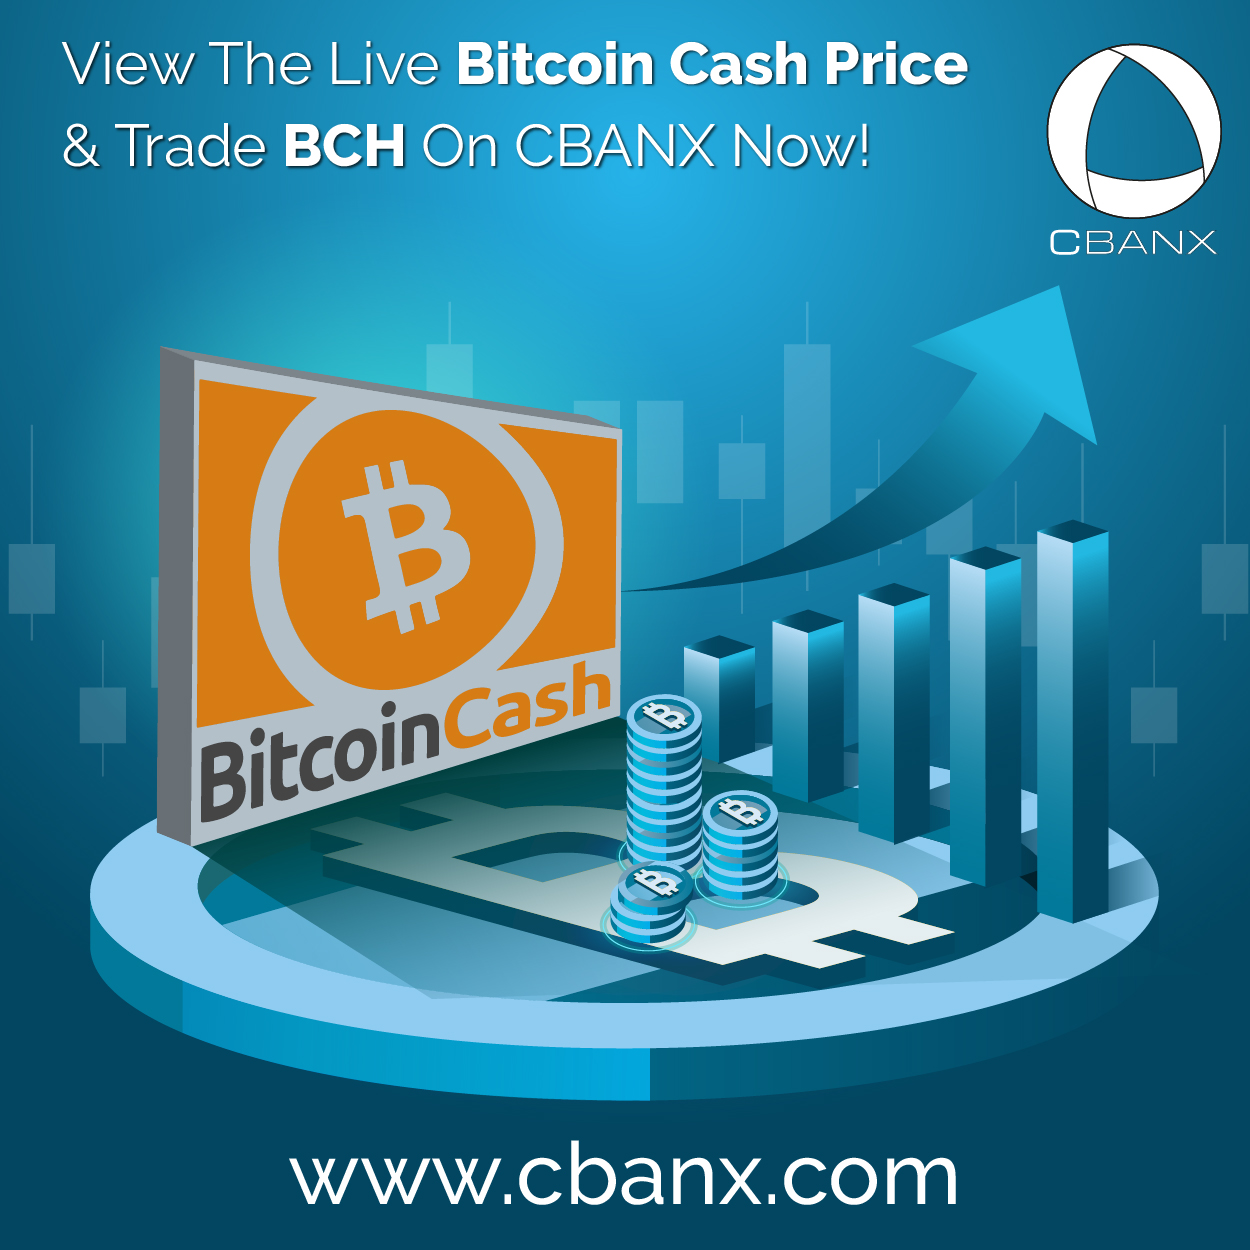 View The Live Bitcoin Cash Price & Trade BCH On CBANX Now!